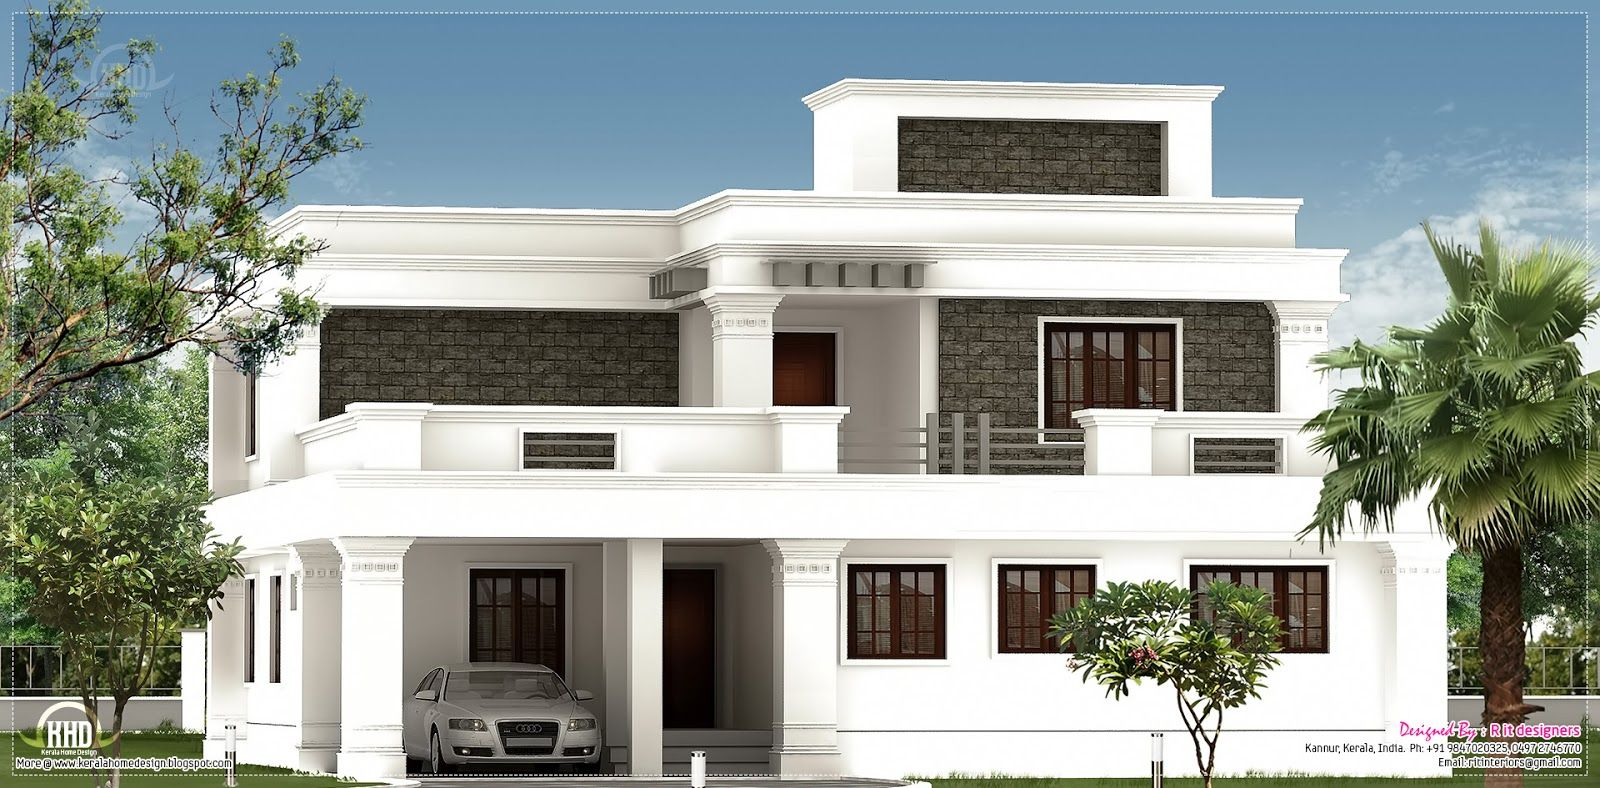 Flat roof homes designs flat roof villa exterior in 2400 for Top 10 house design